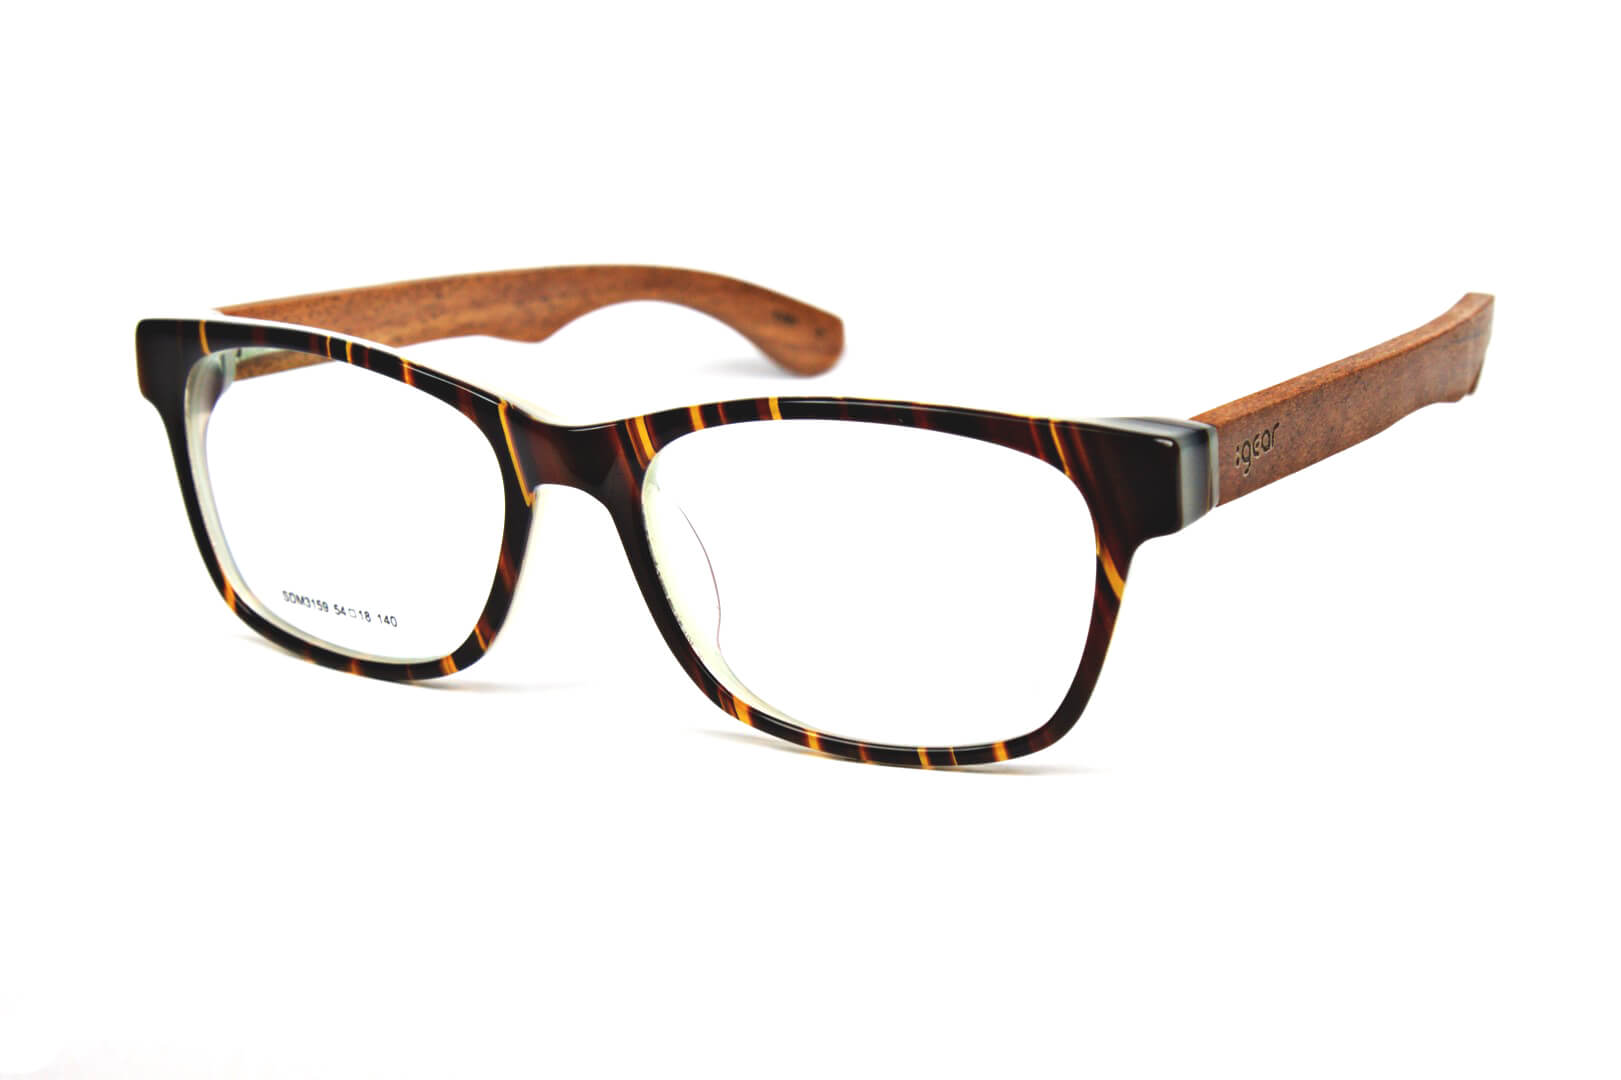 Wooden Eyeglasses Are Available At Igearindia Com